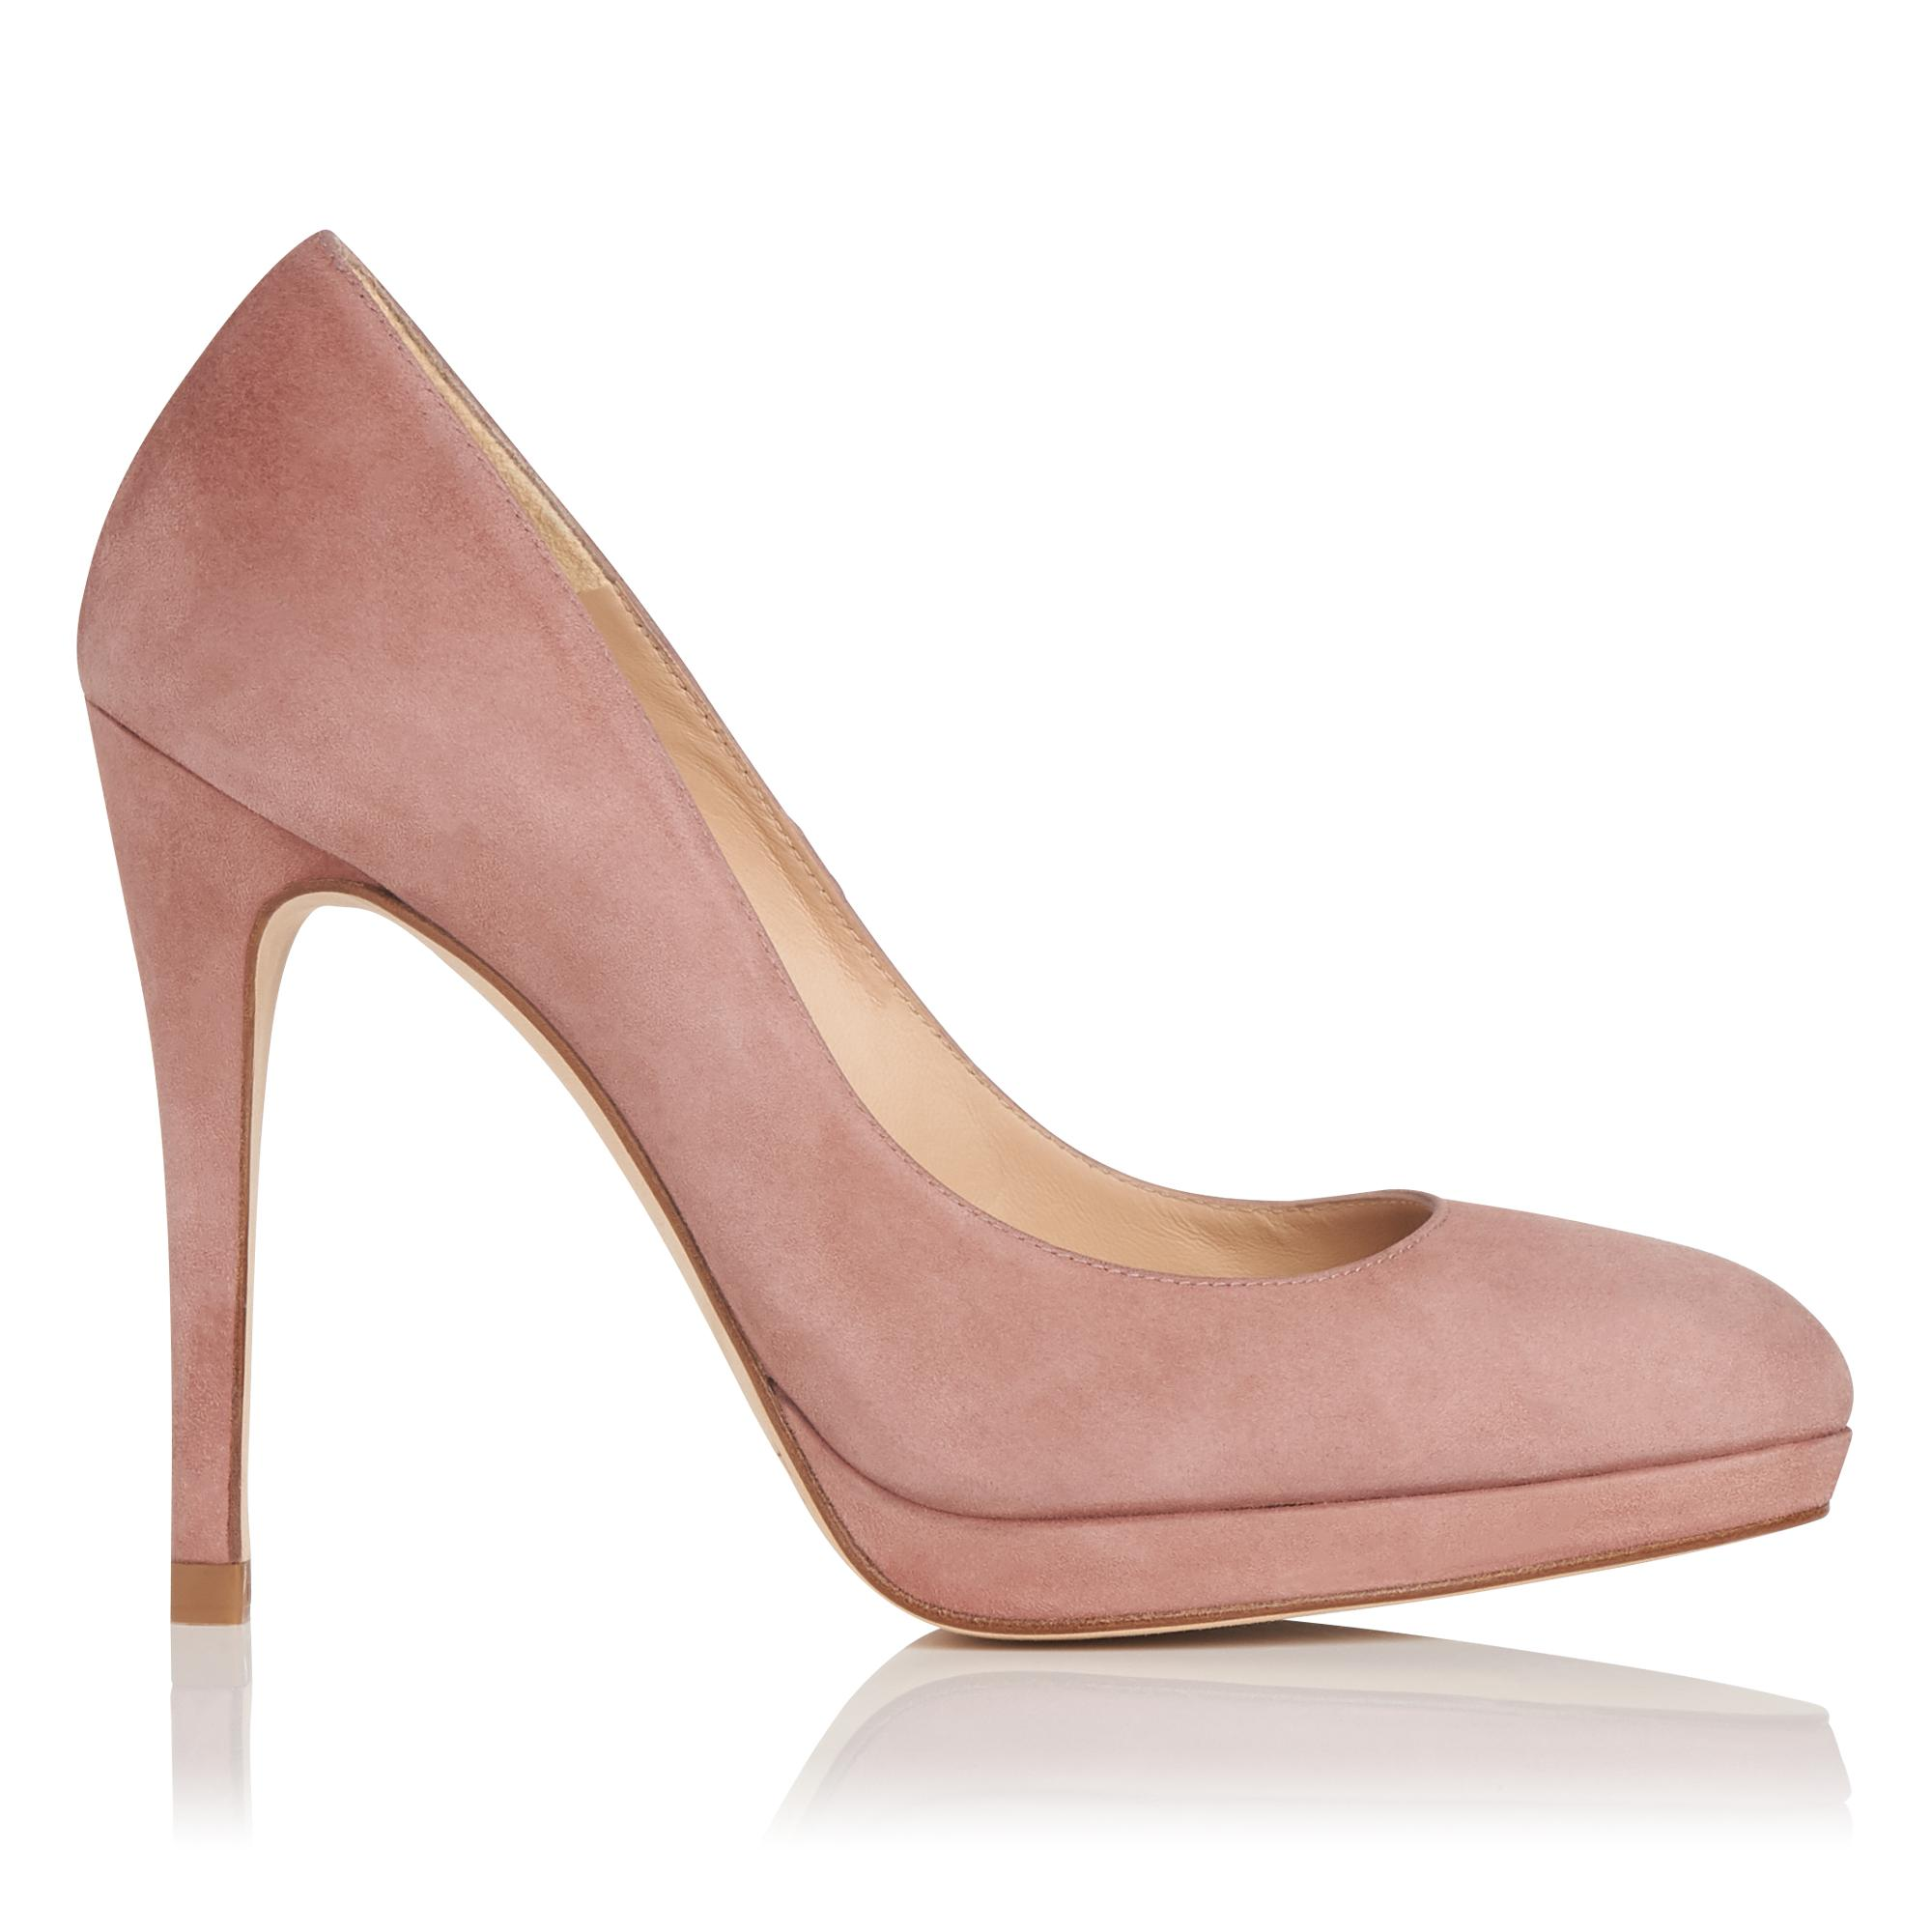 New Sledge Pink Suede Heel